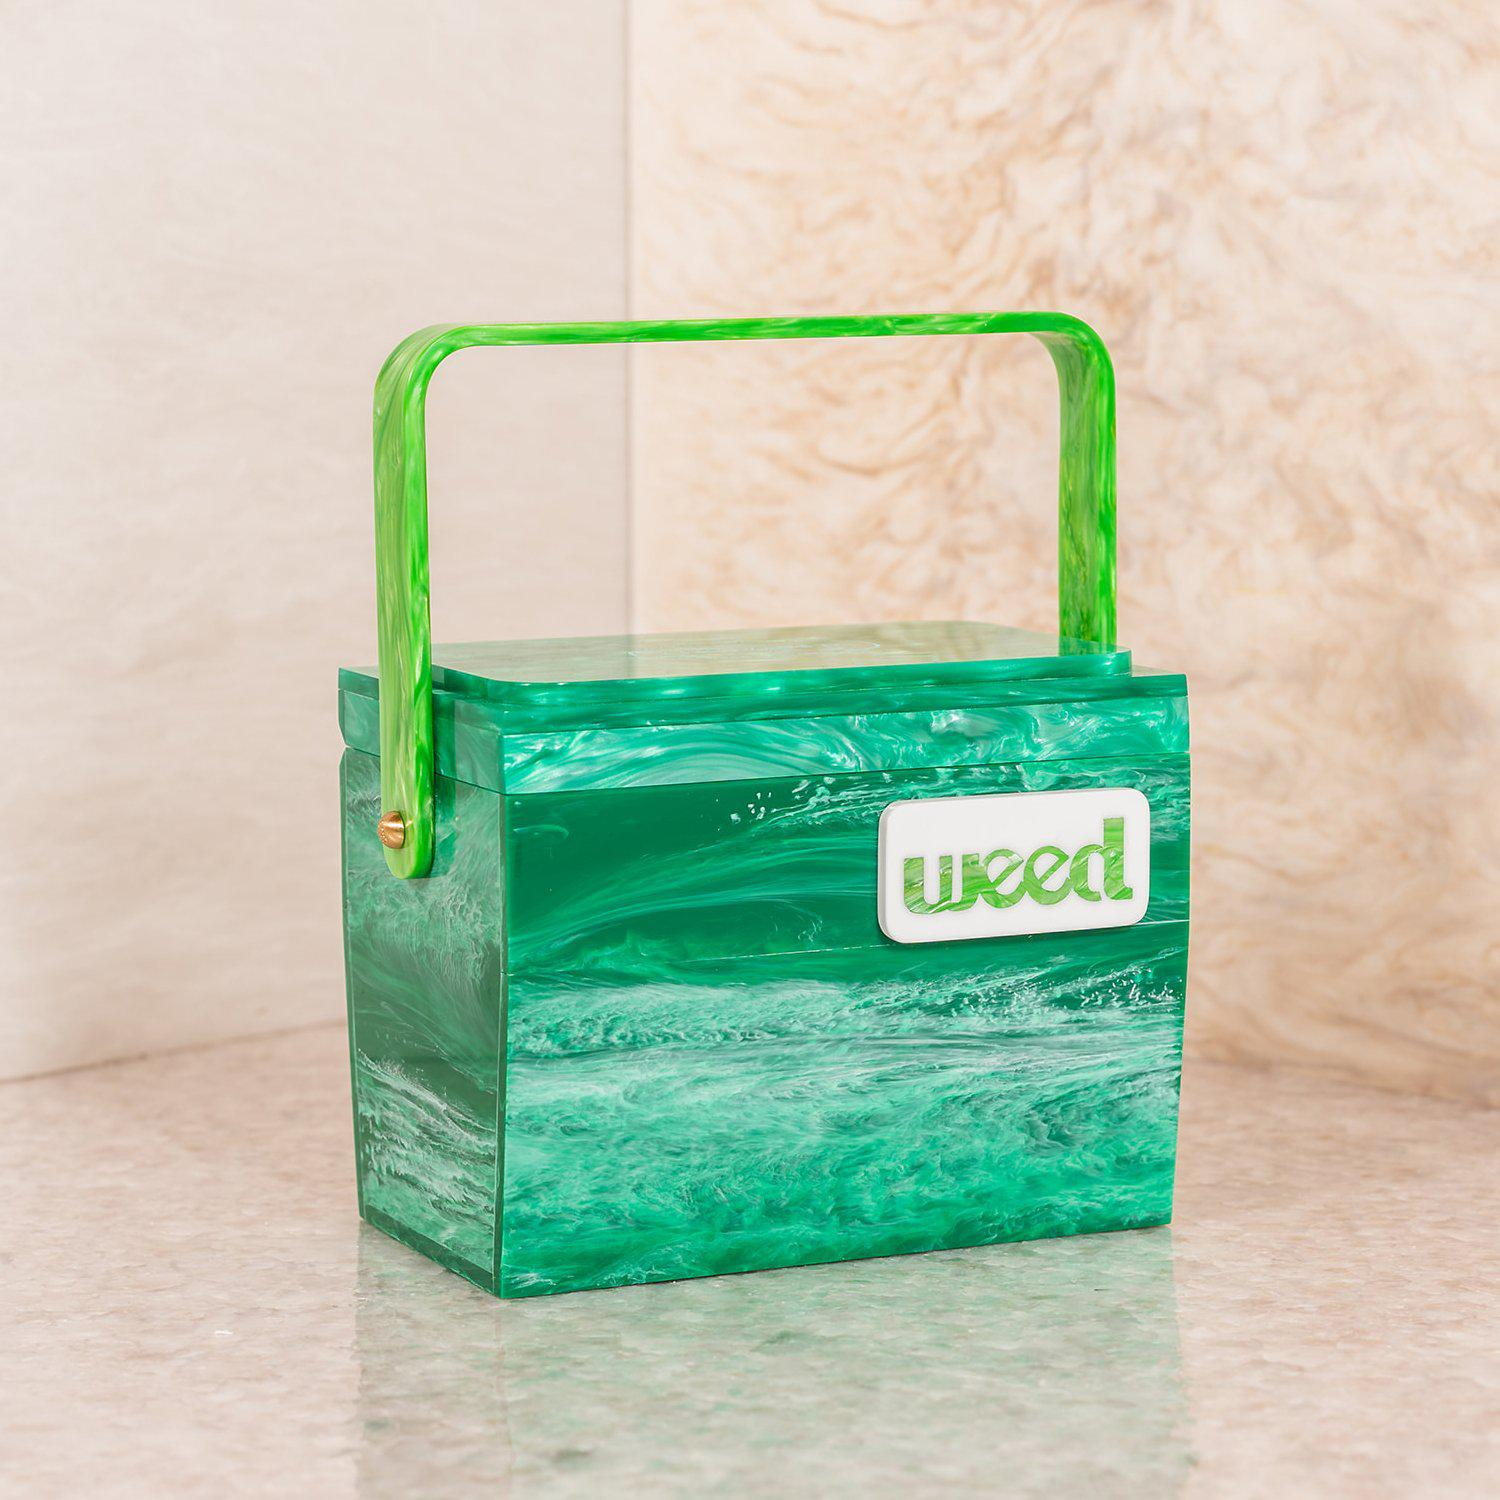 Cooler Bag in Cash and Carry